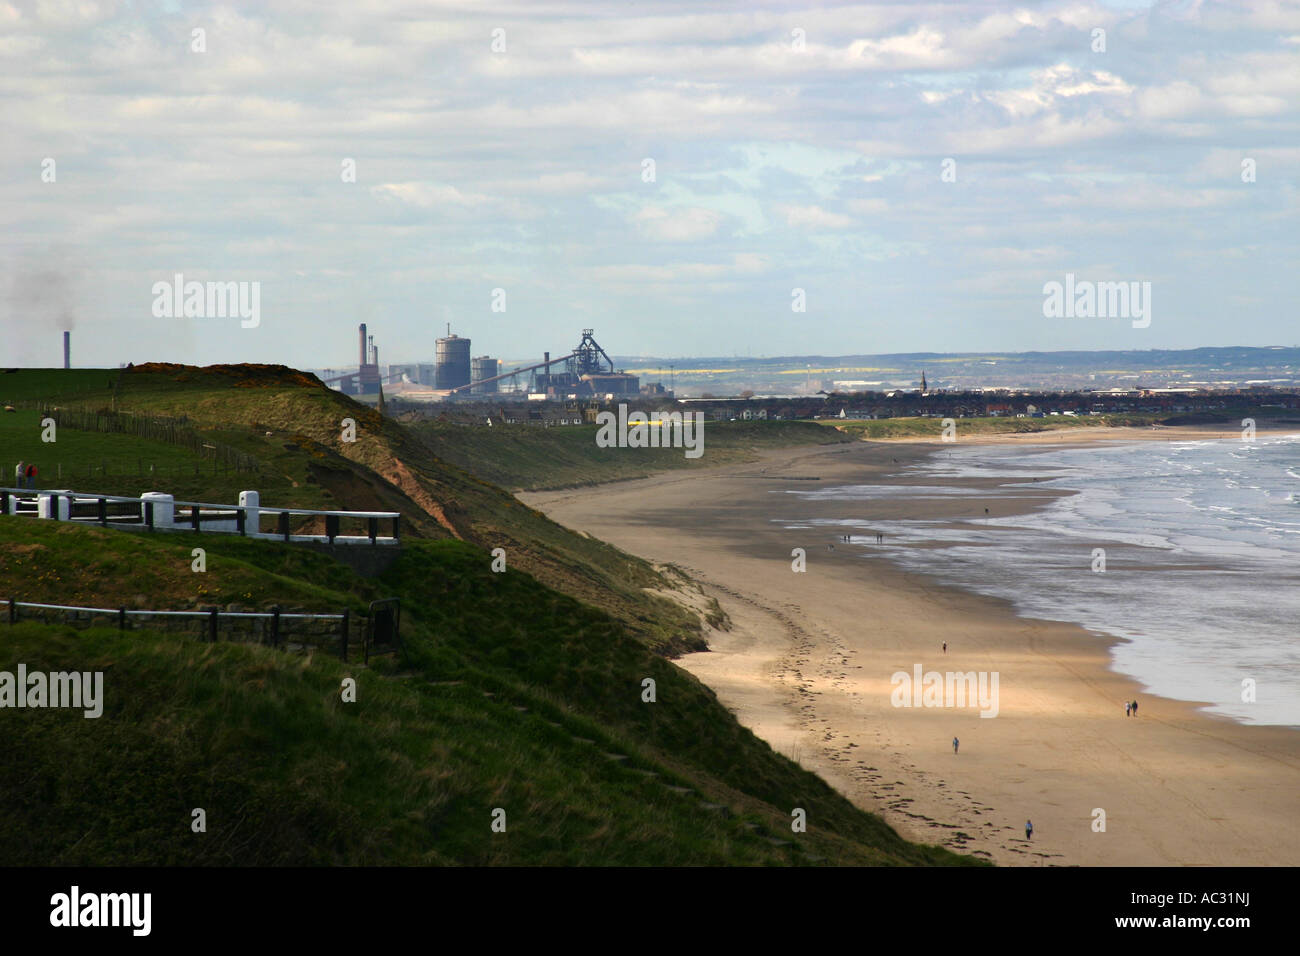 The blast furnace and steelworks on the east coast at Redcar viewed from the pier at Saltburn. - Stock Image